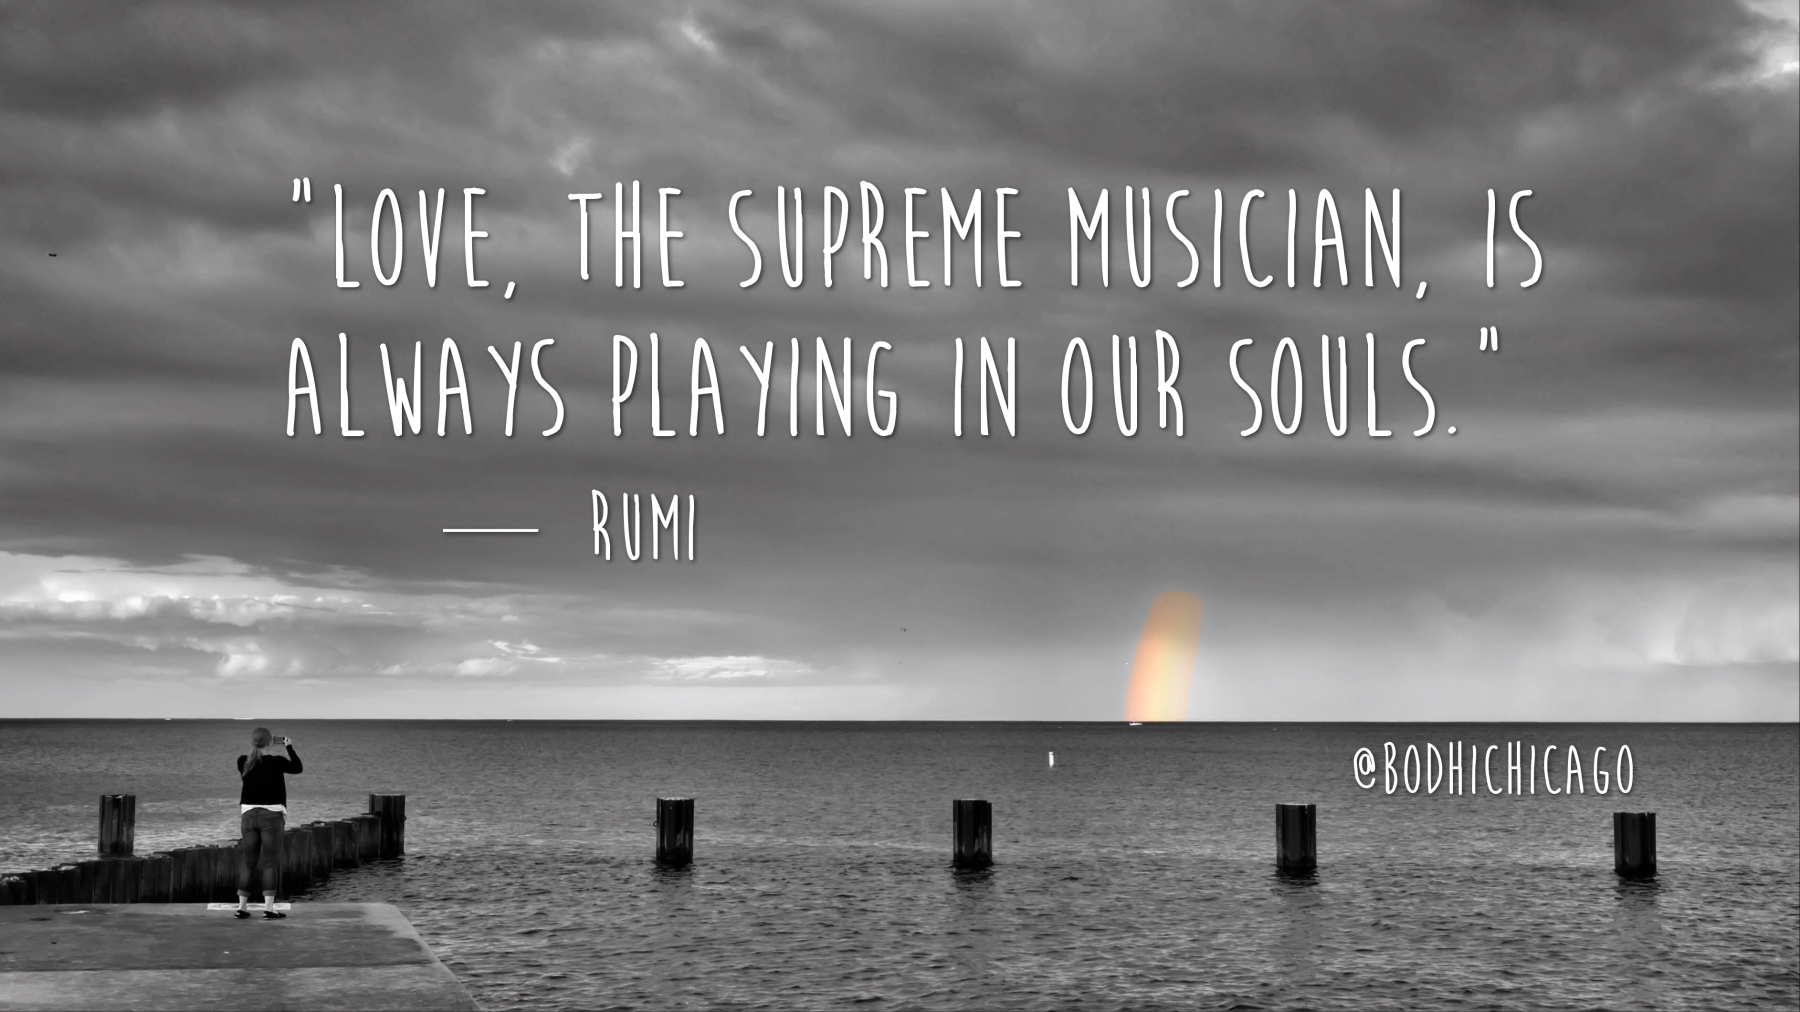 Spiritual Quotes About Love Wednesday Wisdom Rumi On Love As The Supreme Musician  Bodhi